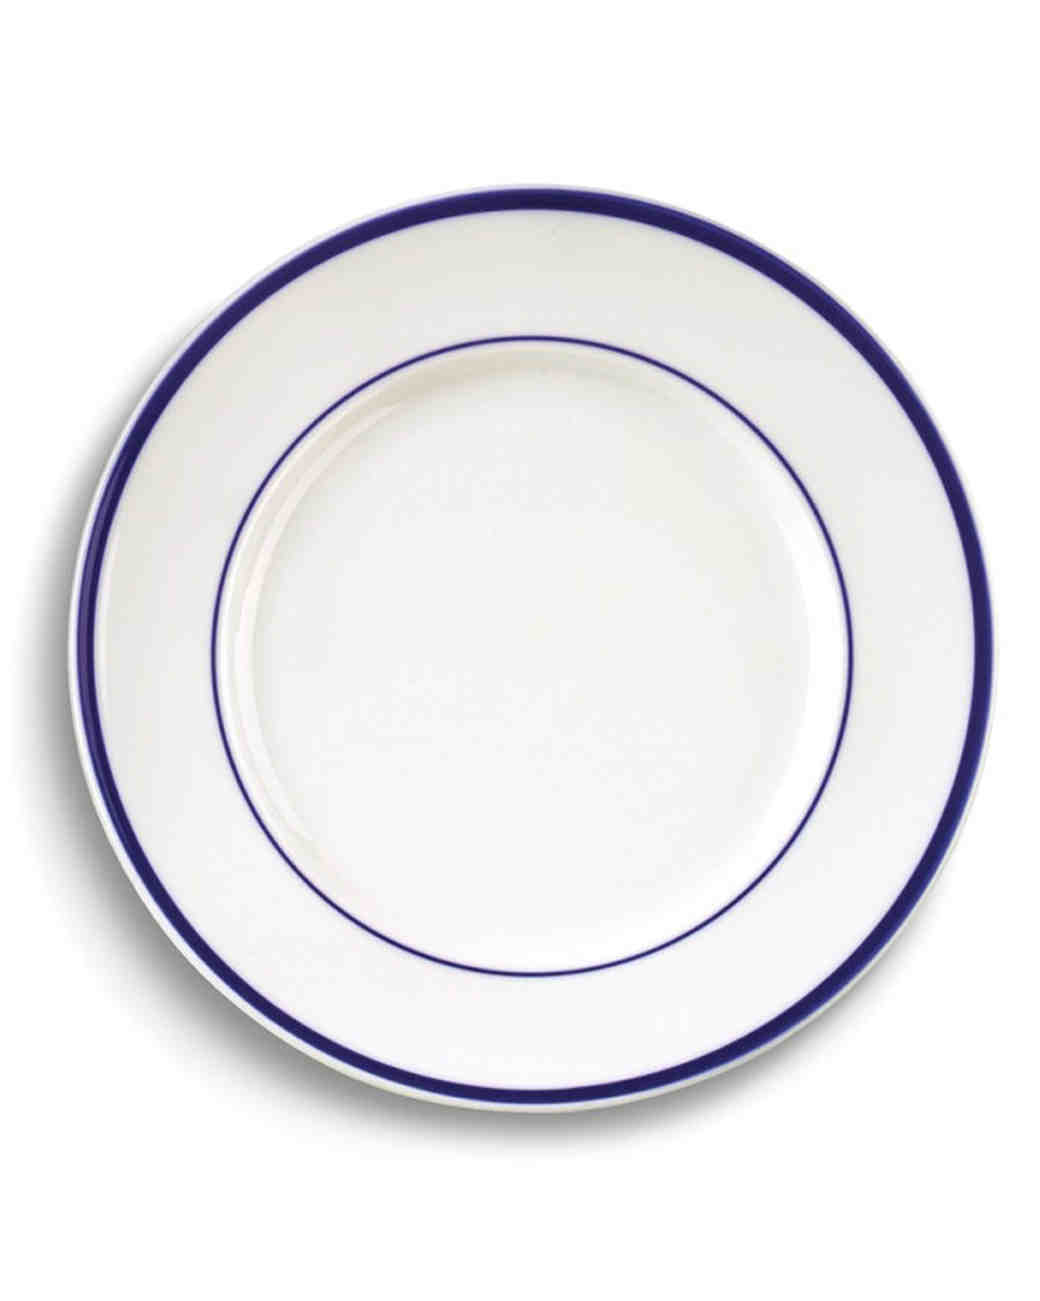 china-registry-classics-williams-sonoma-blue-plate-1014.jpg